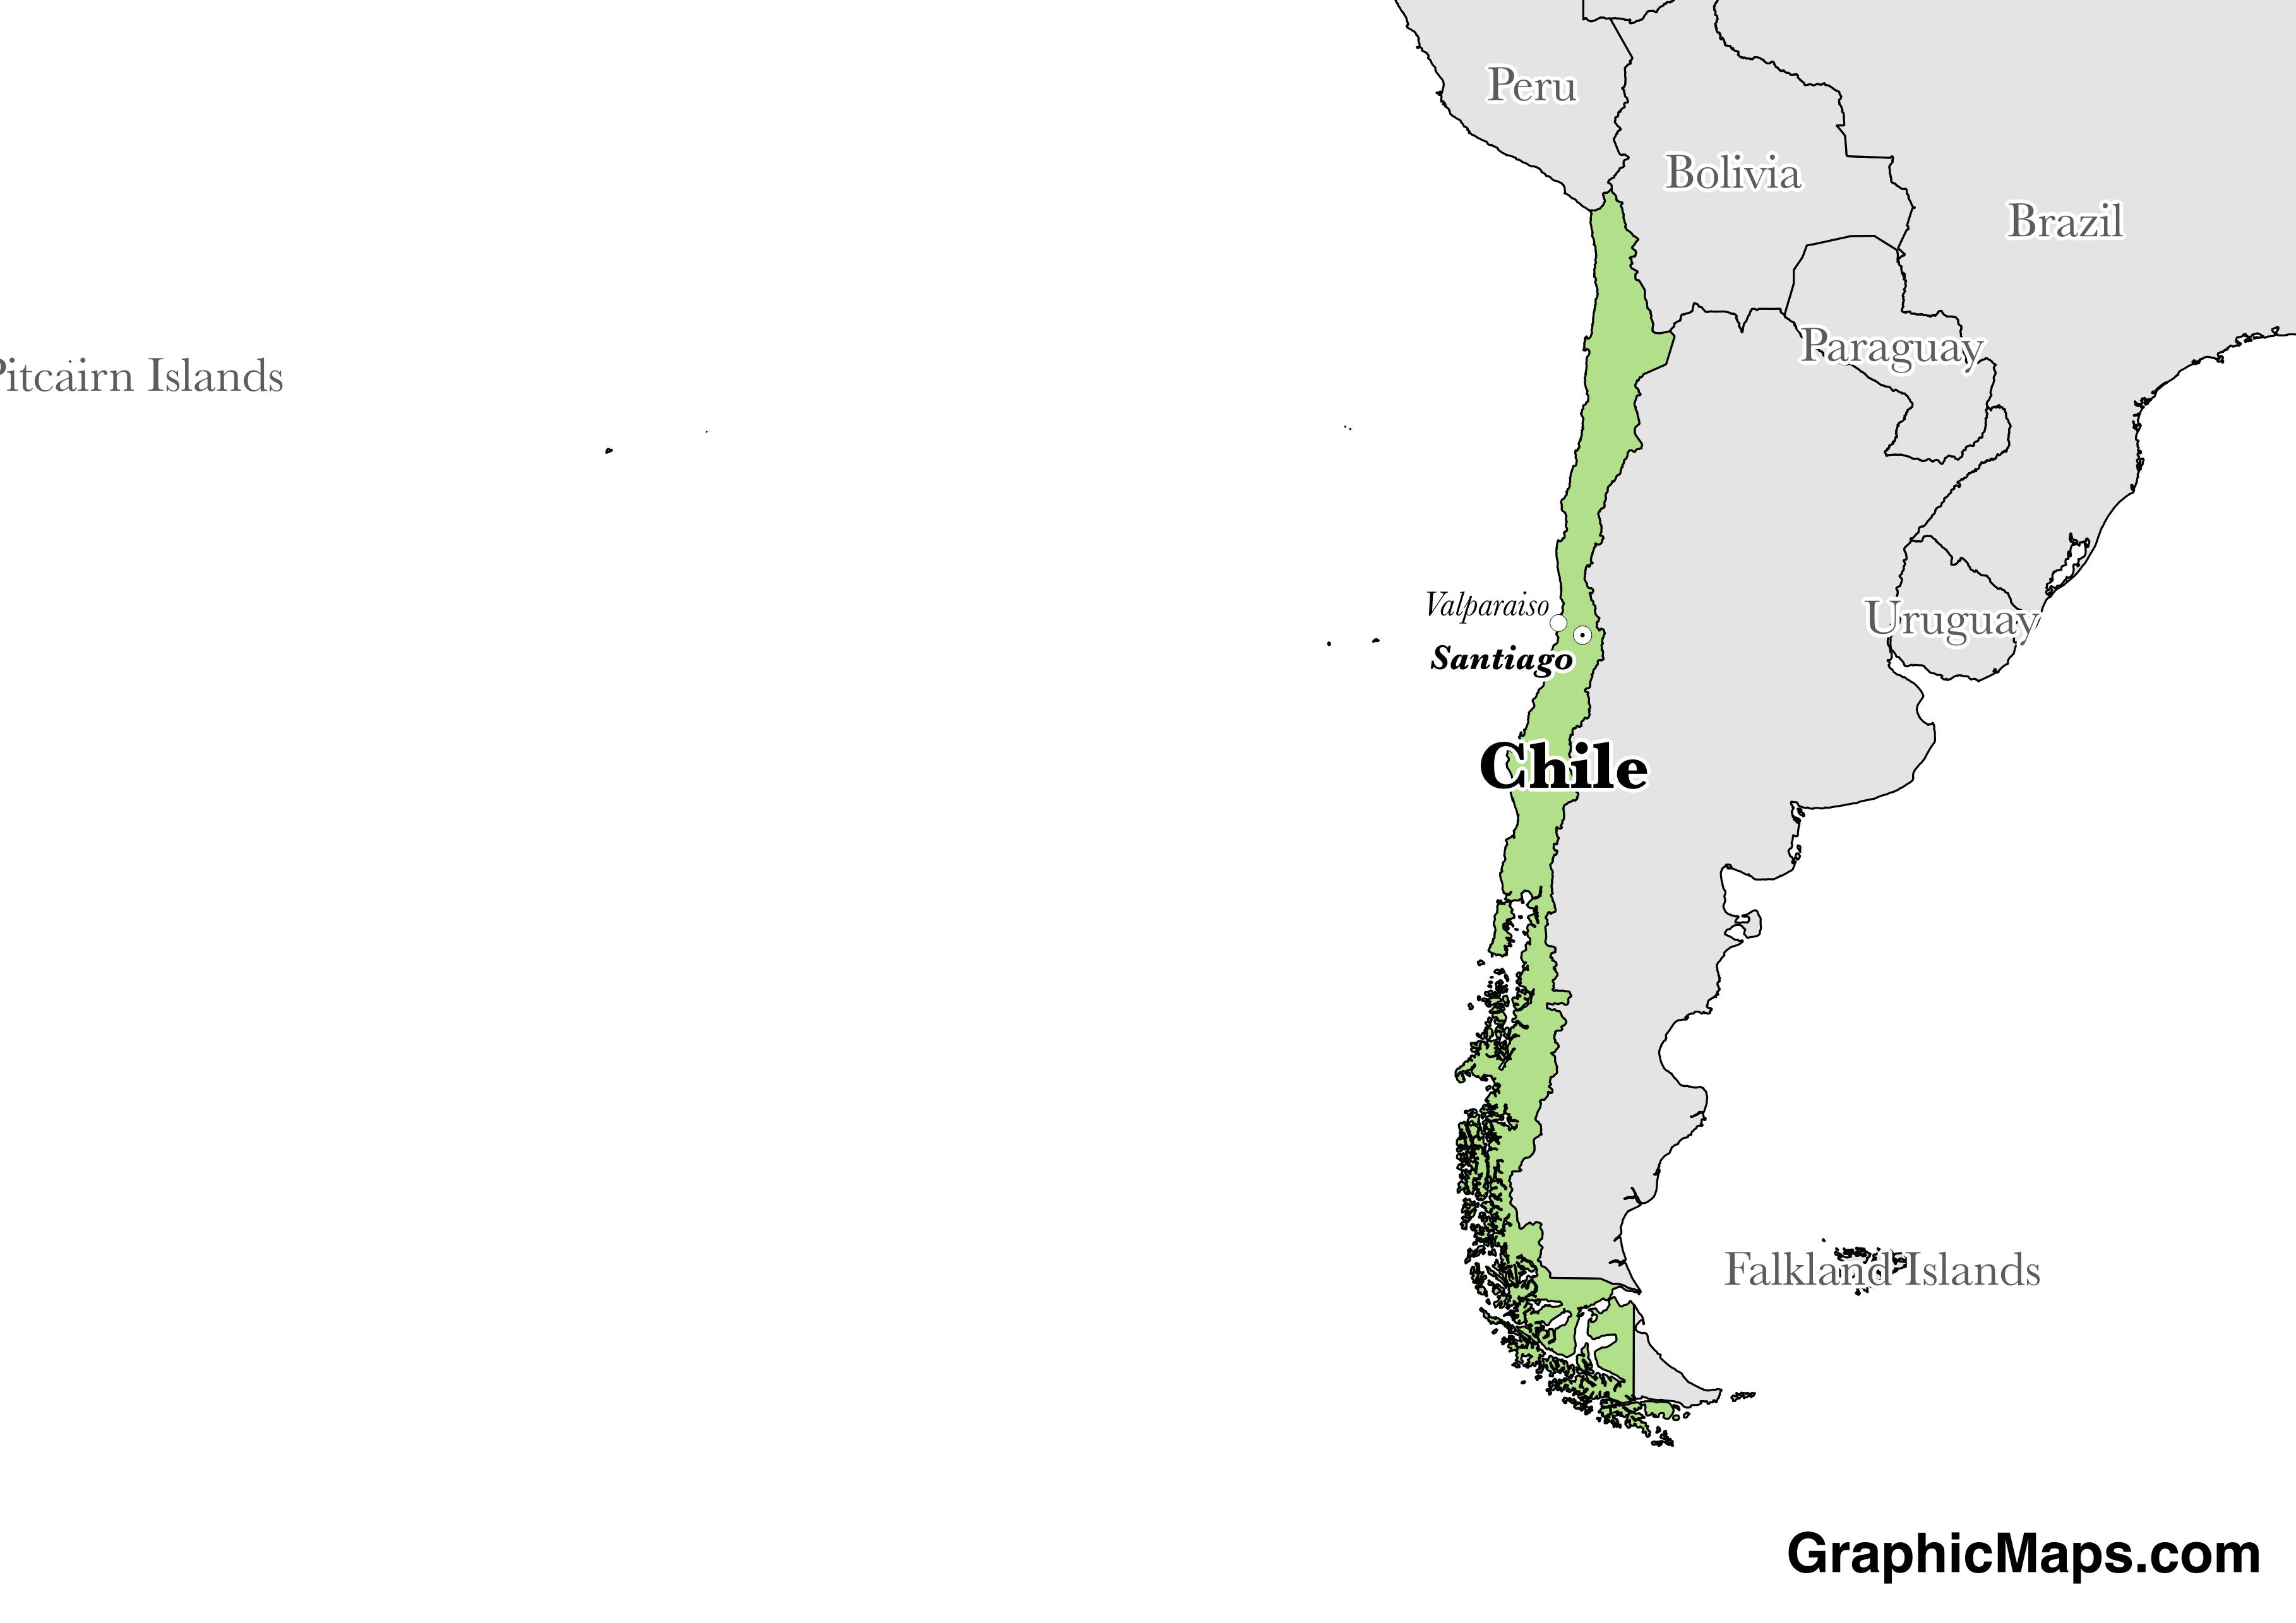 Map showing the location of Chile